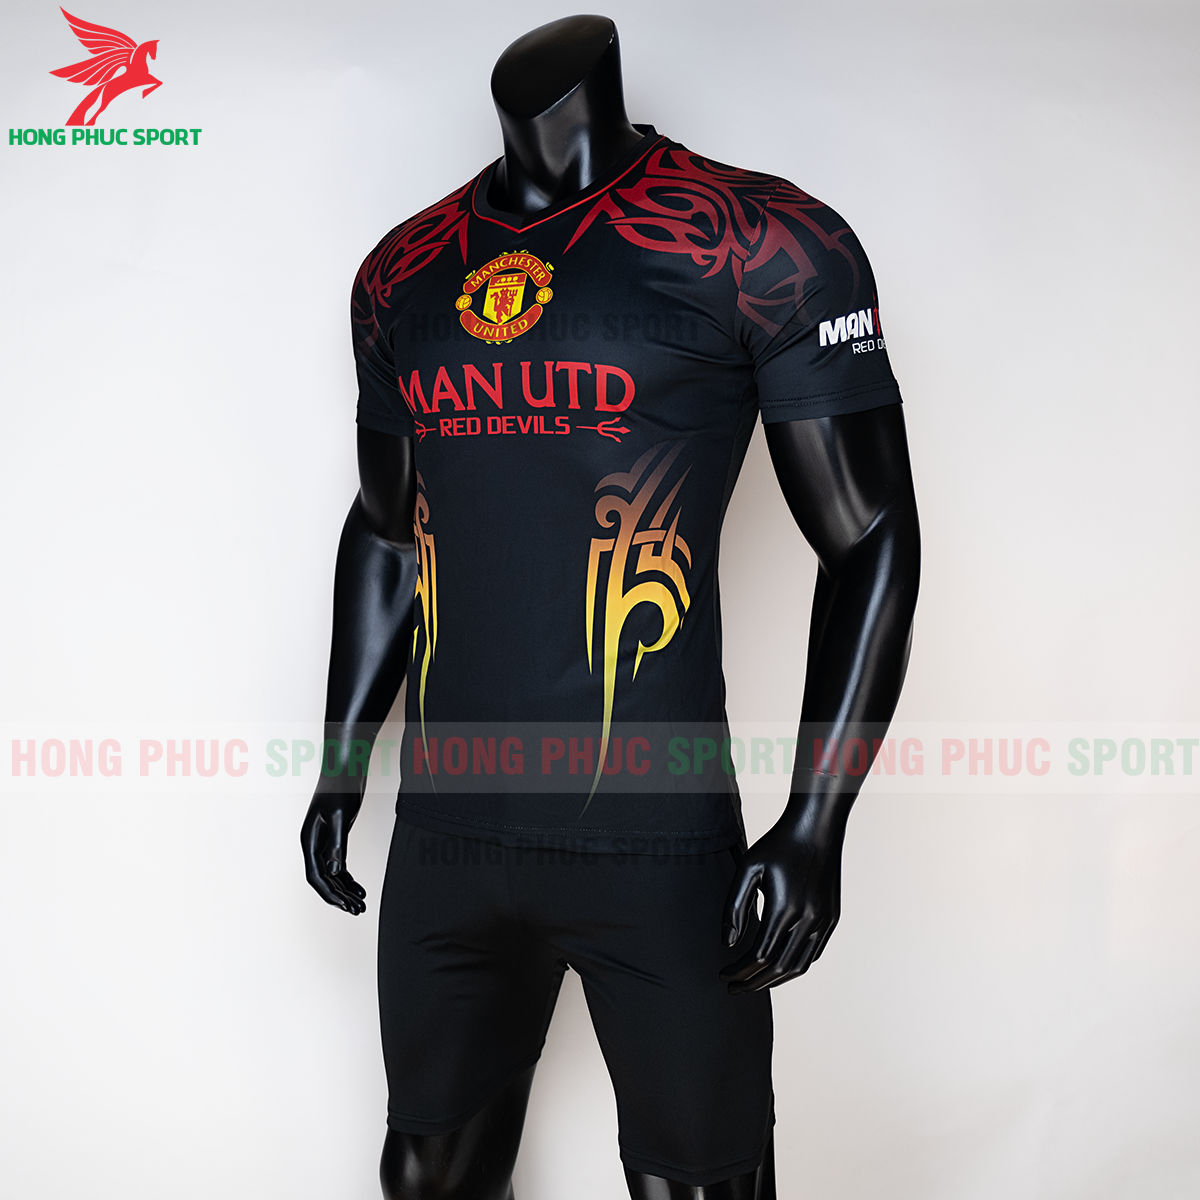 https://cdn.hongphucsport.com/unsafe/s4.shopbay.vn/files/285/ao-manchester-united-2020-phien-ban-fan-5-5f72df80bbafb.png